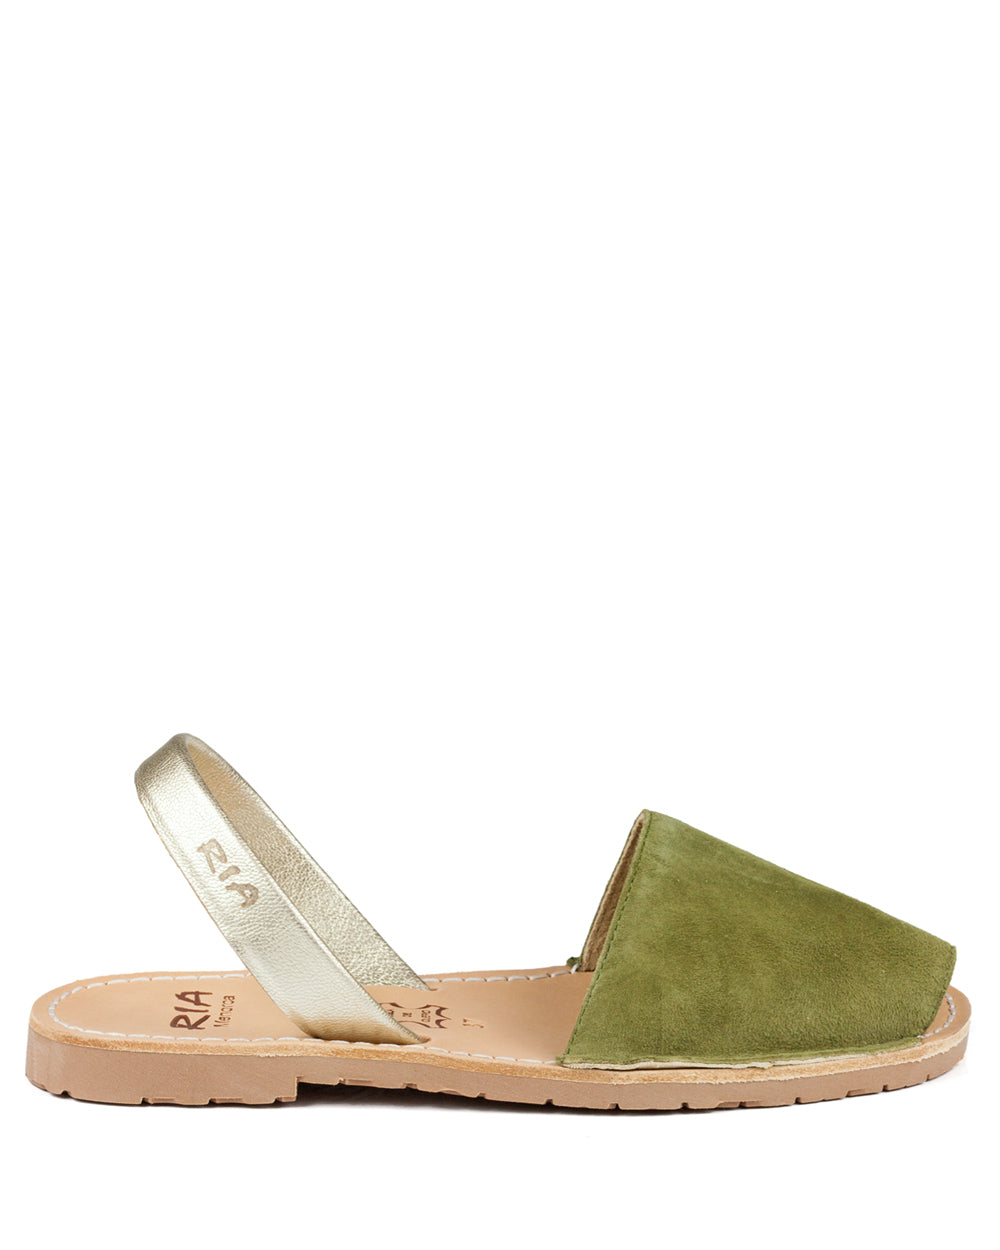 Menorcan Sandals Green Suede and Gold - The Espadrille Hut